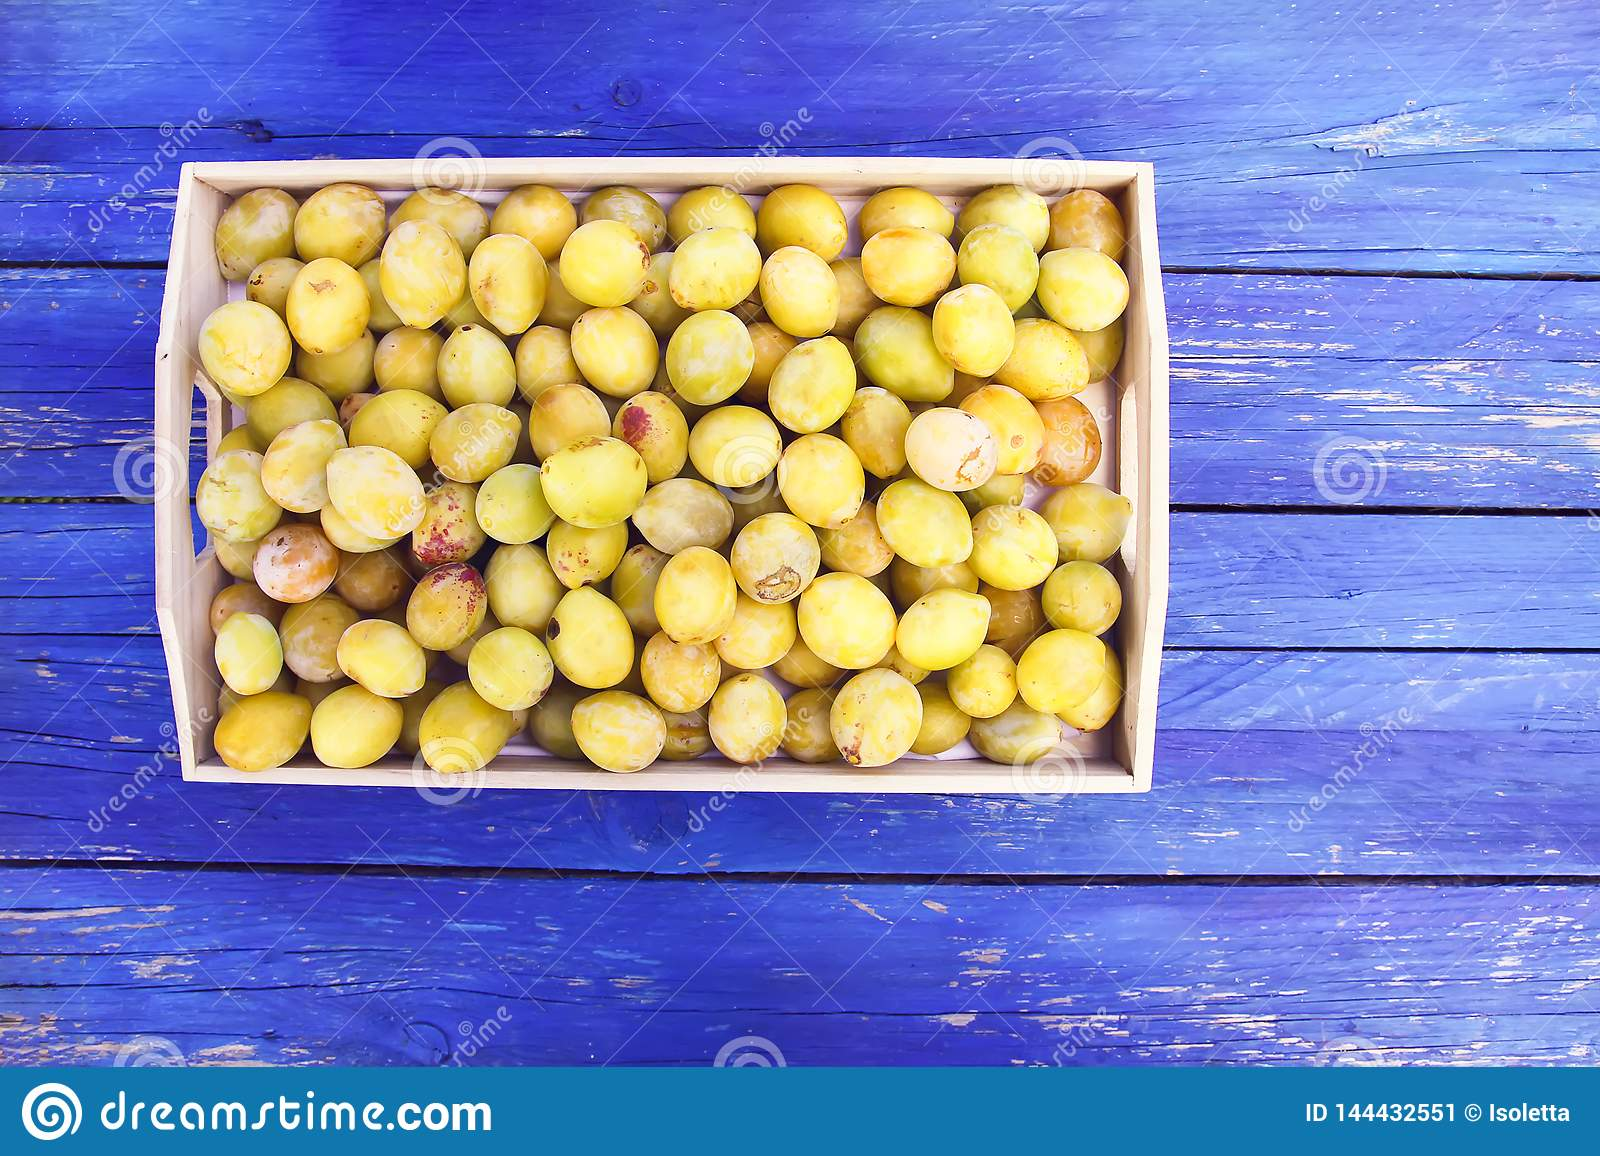 Fresh yellow plums. Ripe fruits in a wooden box on blue boards background.